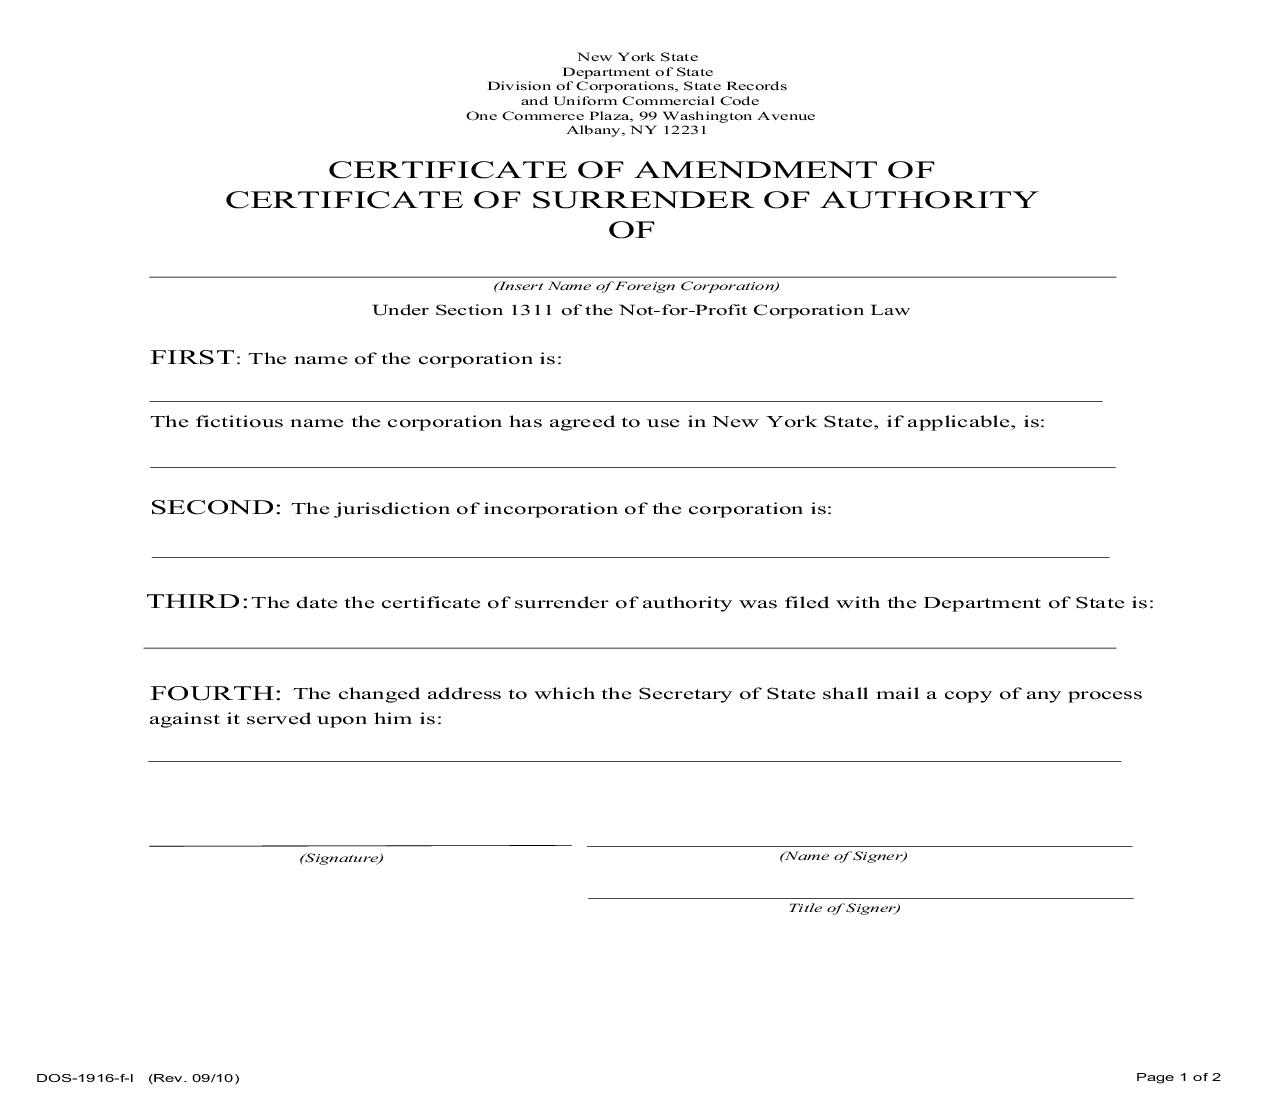 Certificate Of Amendment Of Certificate Of Surrender Of Authority (Foreign Not-For-Profit) {DOS-1916} | Pdf Fpdf Doc Docx | New York